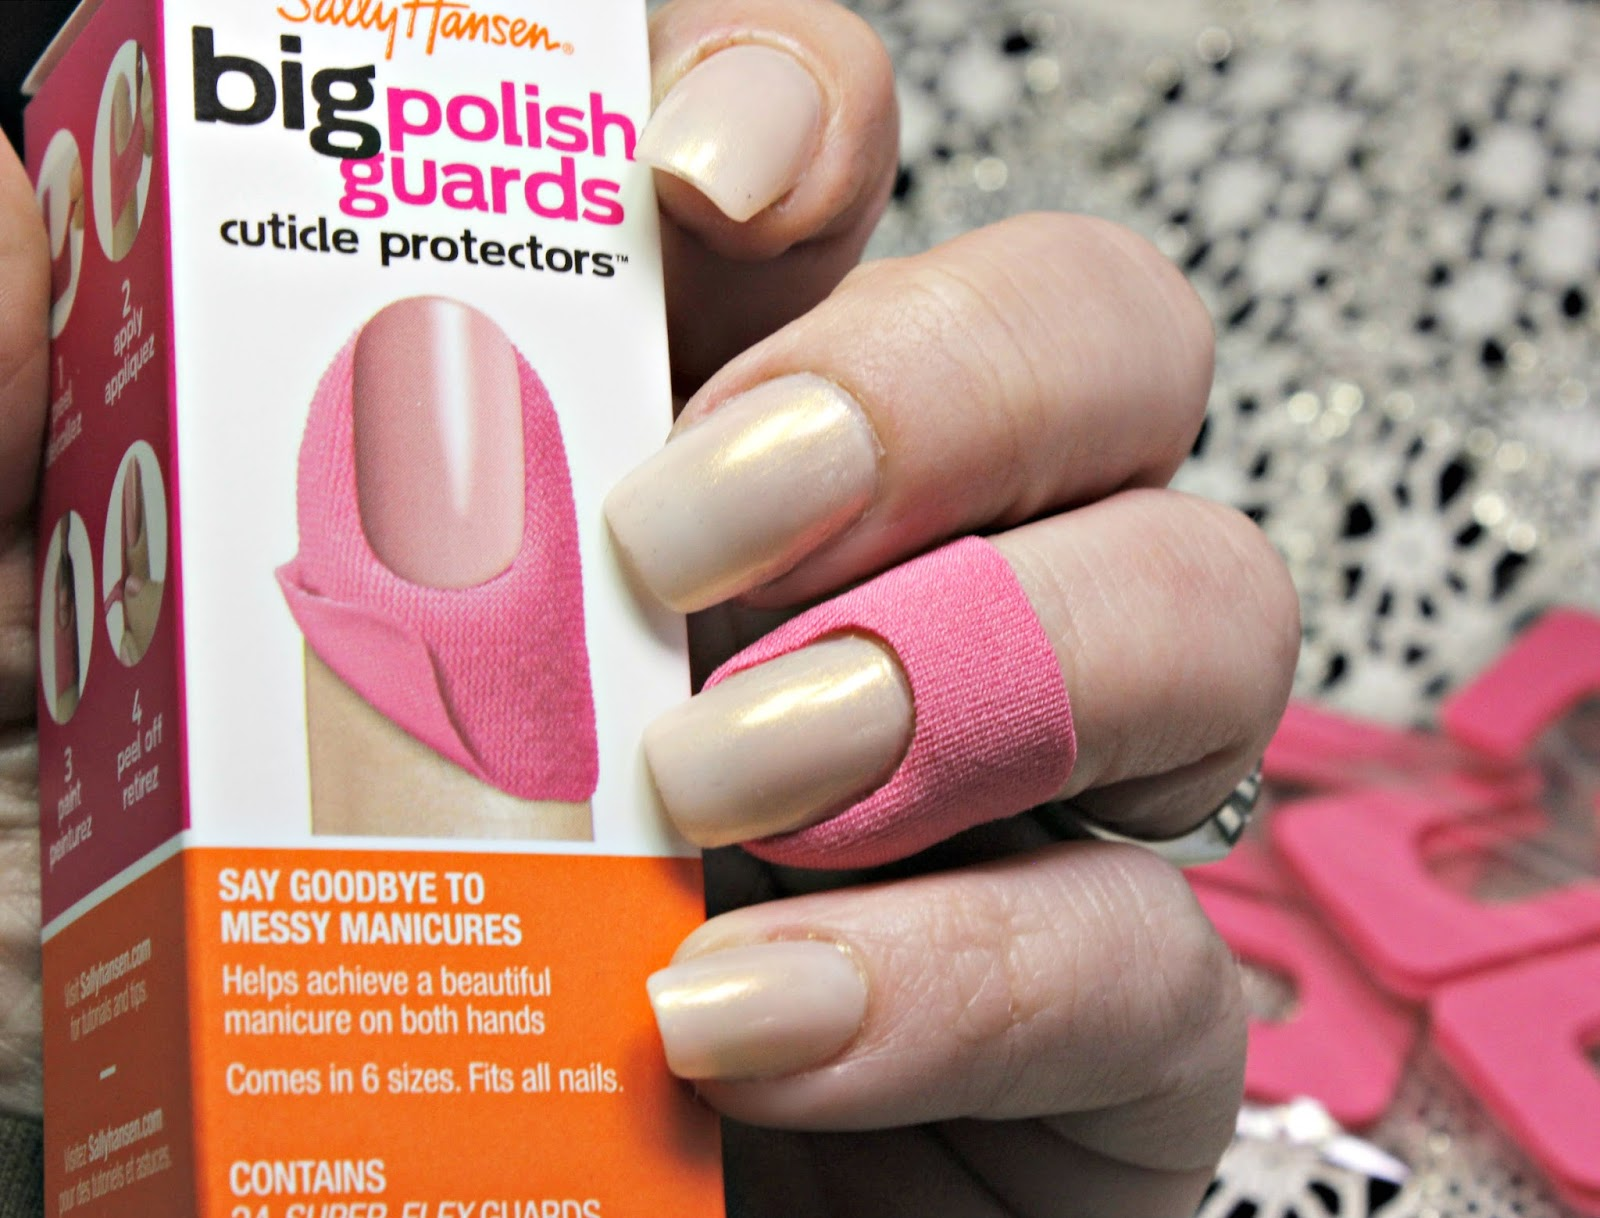 Sally Hansen Big Polish Guards for All Your Cutie Love